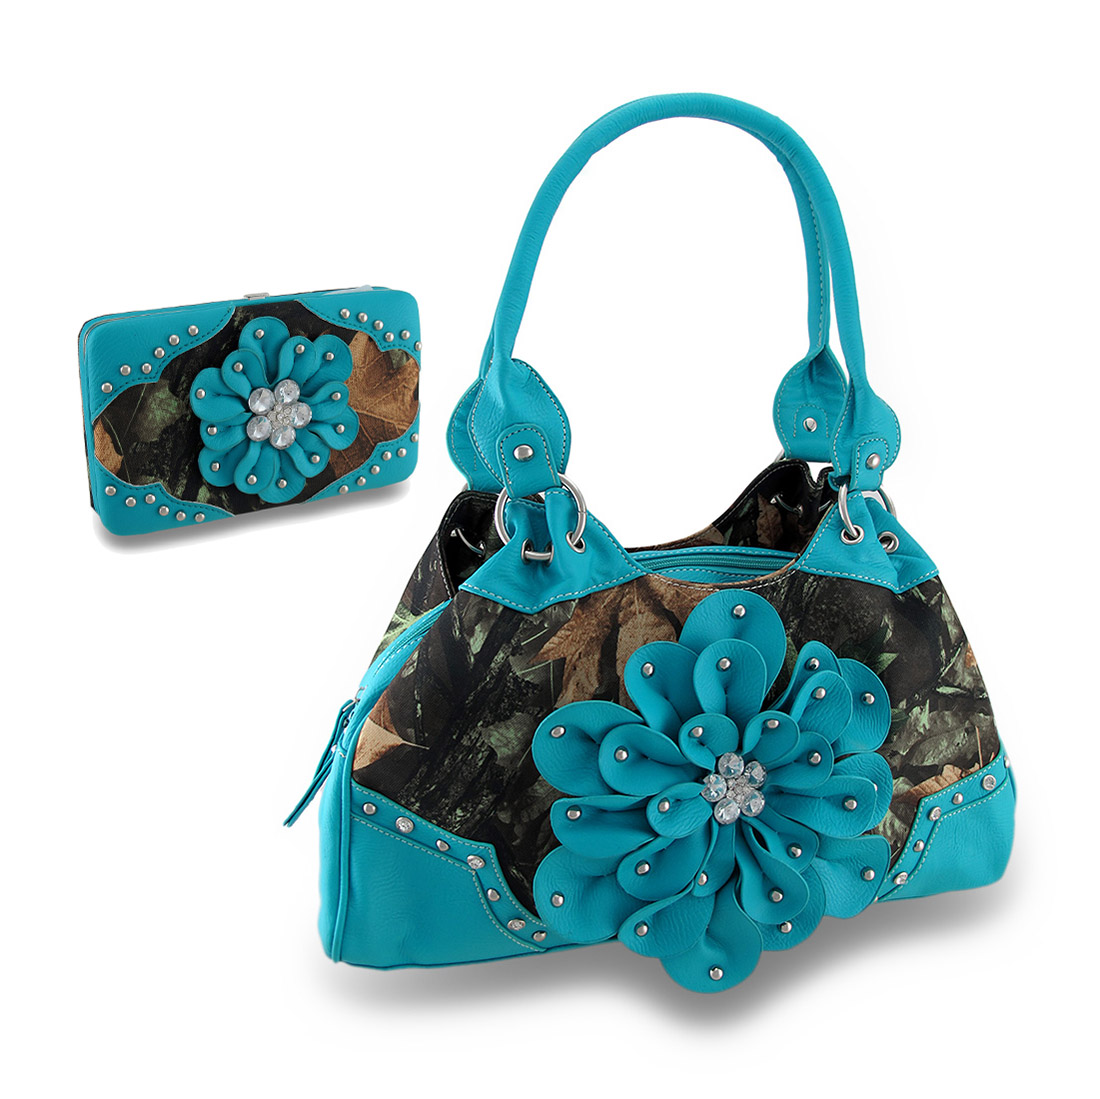 Zeckos - Forest Camouflage Studded Rhinestone Flower Carpet Bag Purse/Wallet Set Turquois - Turquoise